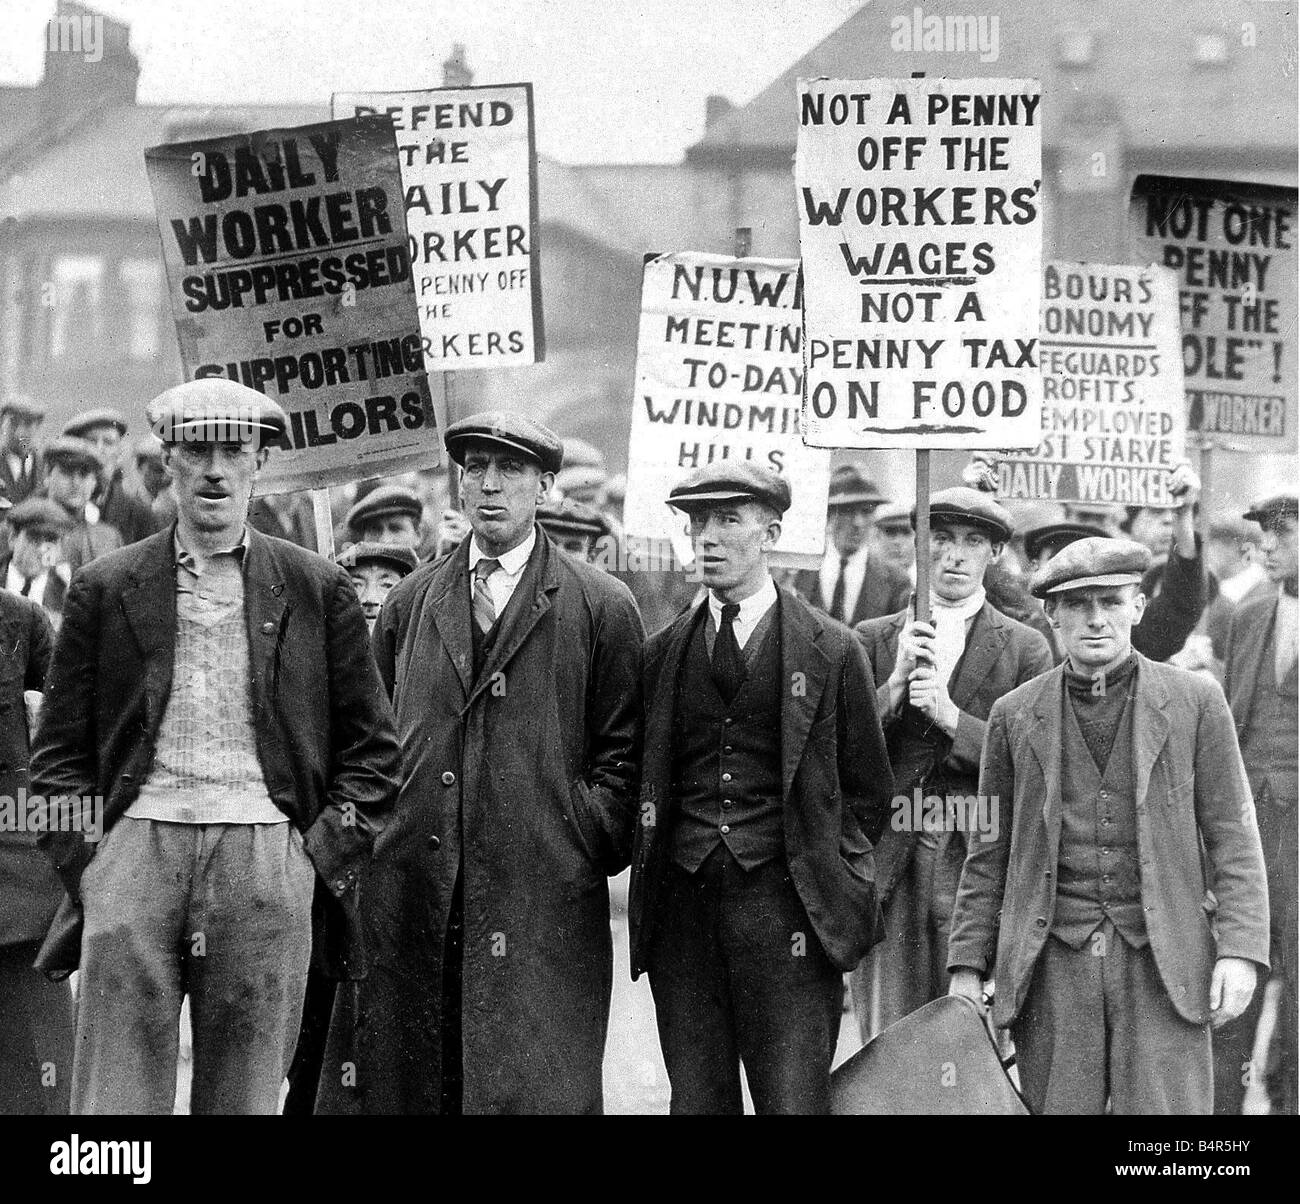 North East workers demonstrating during the General Strike of 1926